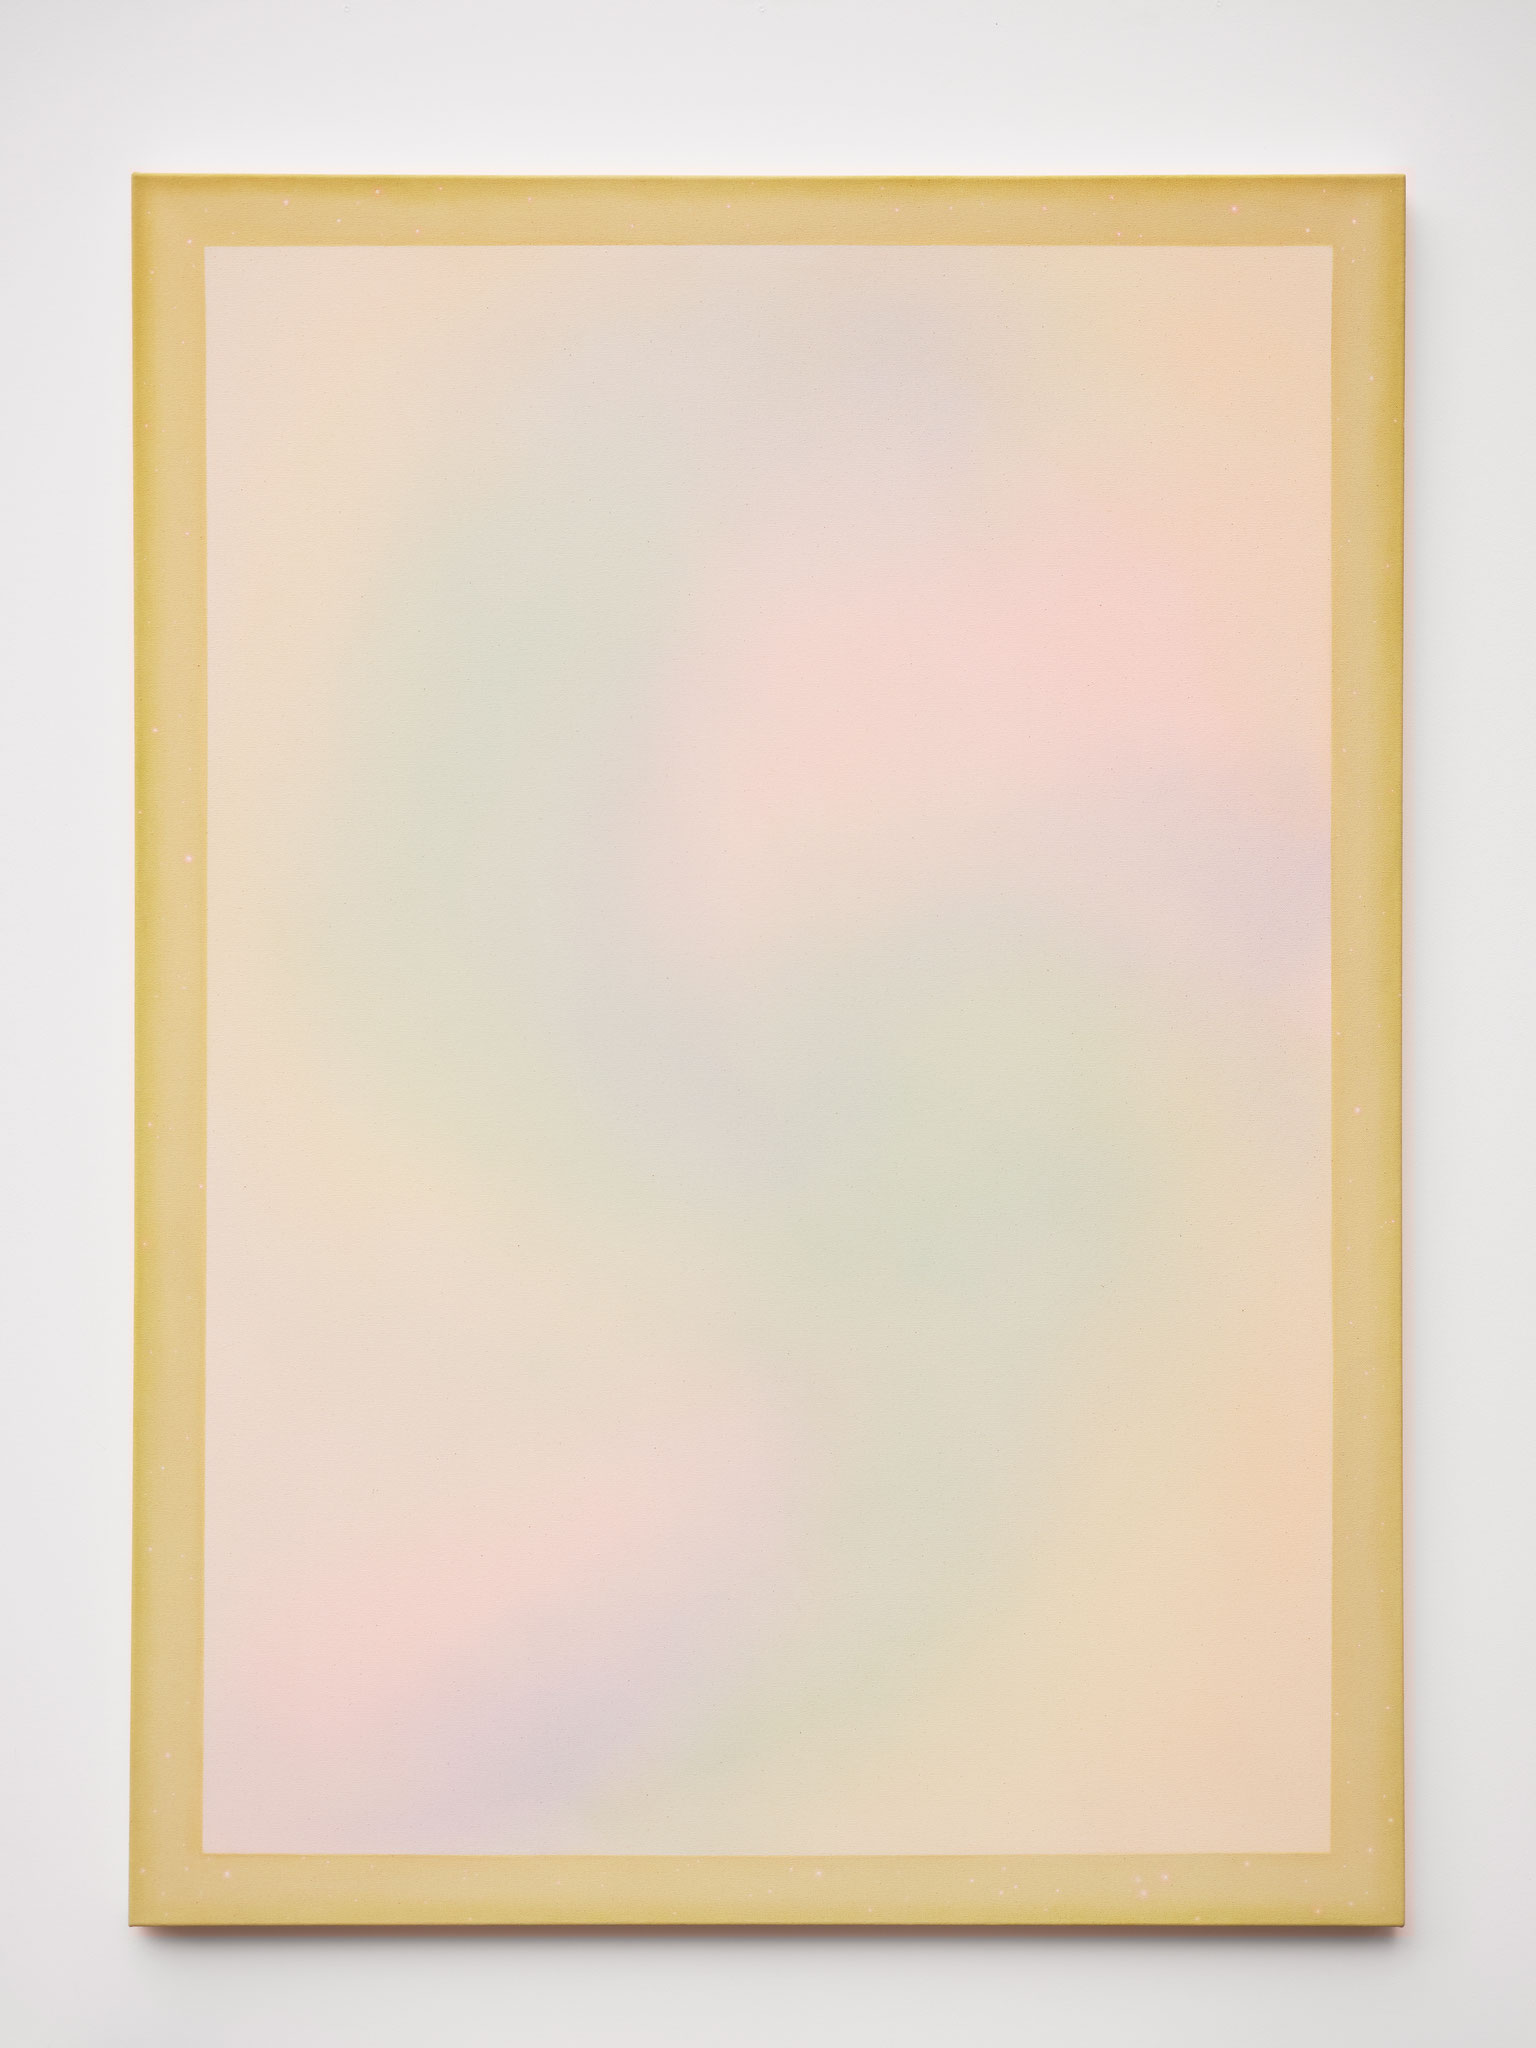 "Alina Birkner ""Untitled (Moonlight under my skin)"" 2018, 170x120 cm, Acrylic on Canvas"